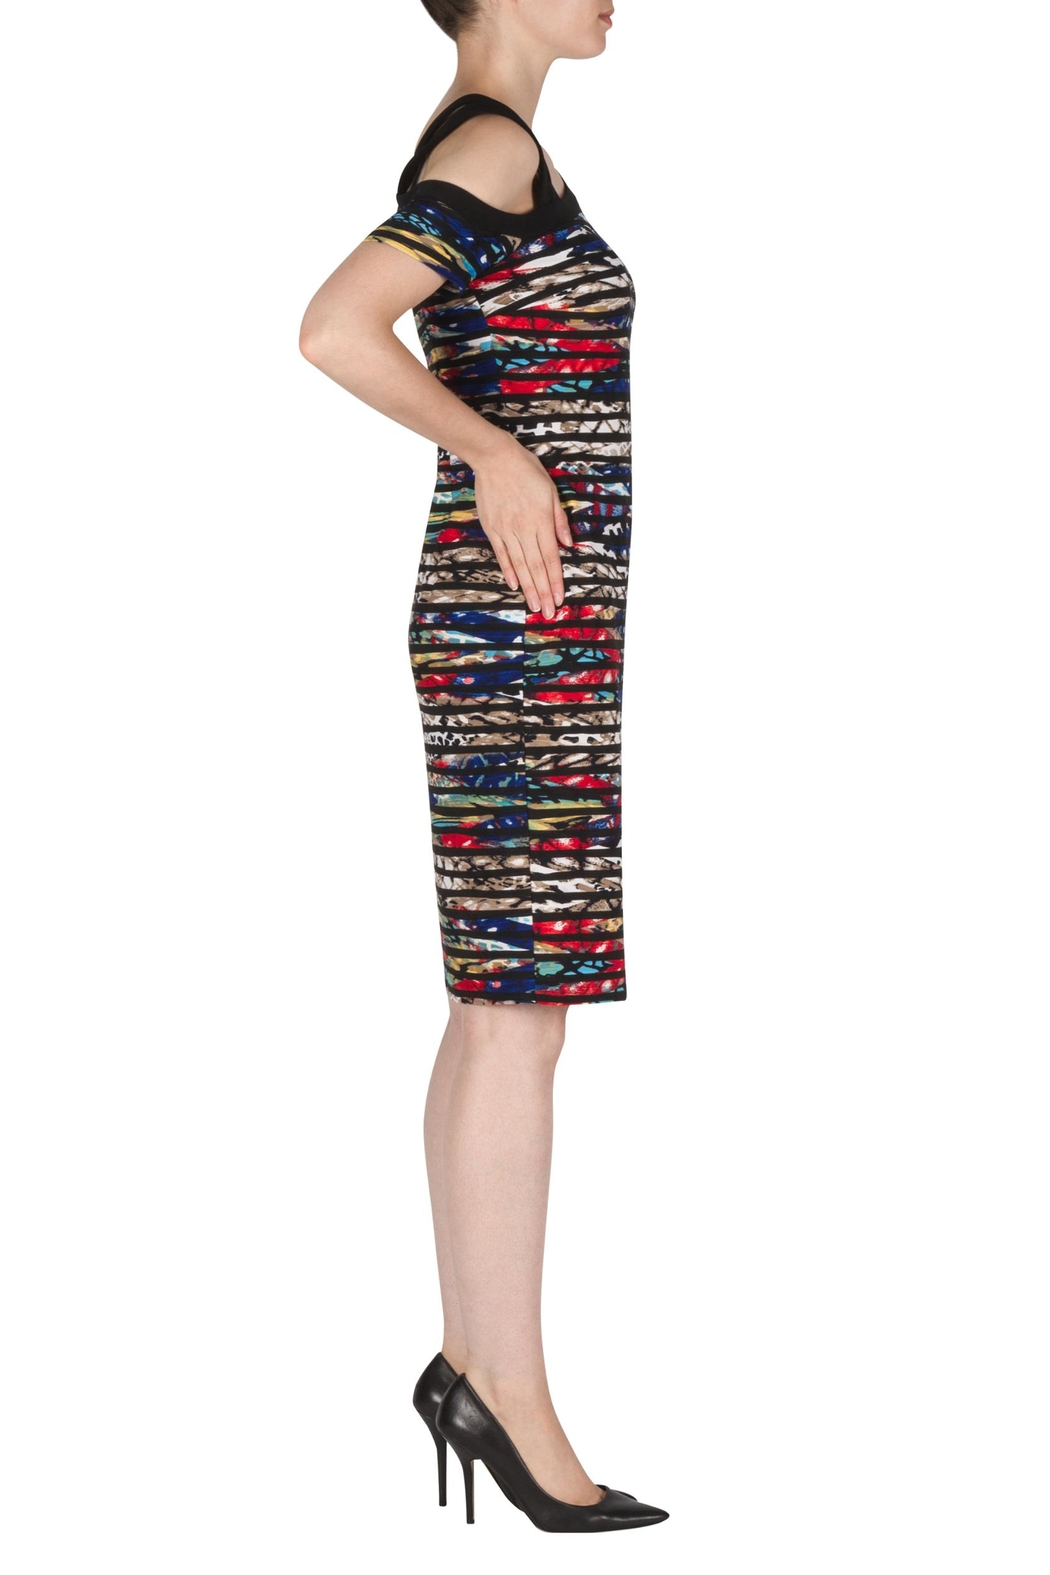 Joseph Ribkoff Kristin Multi-Colored Dress - Front Full Image